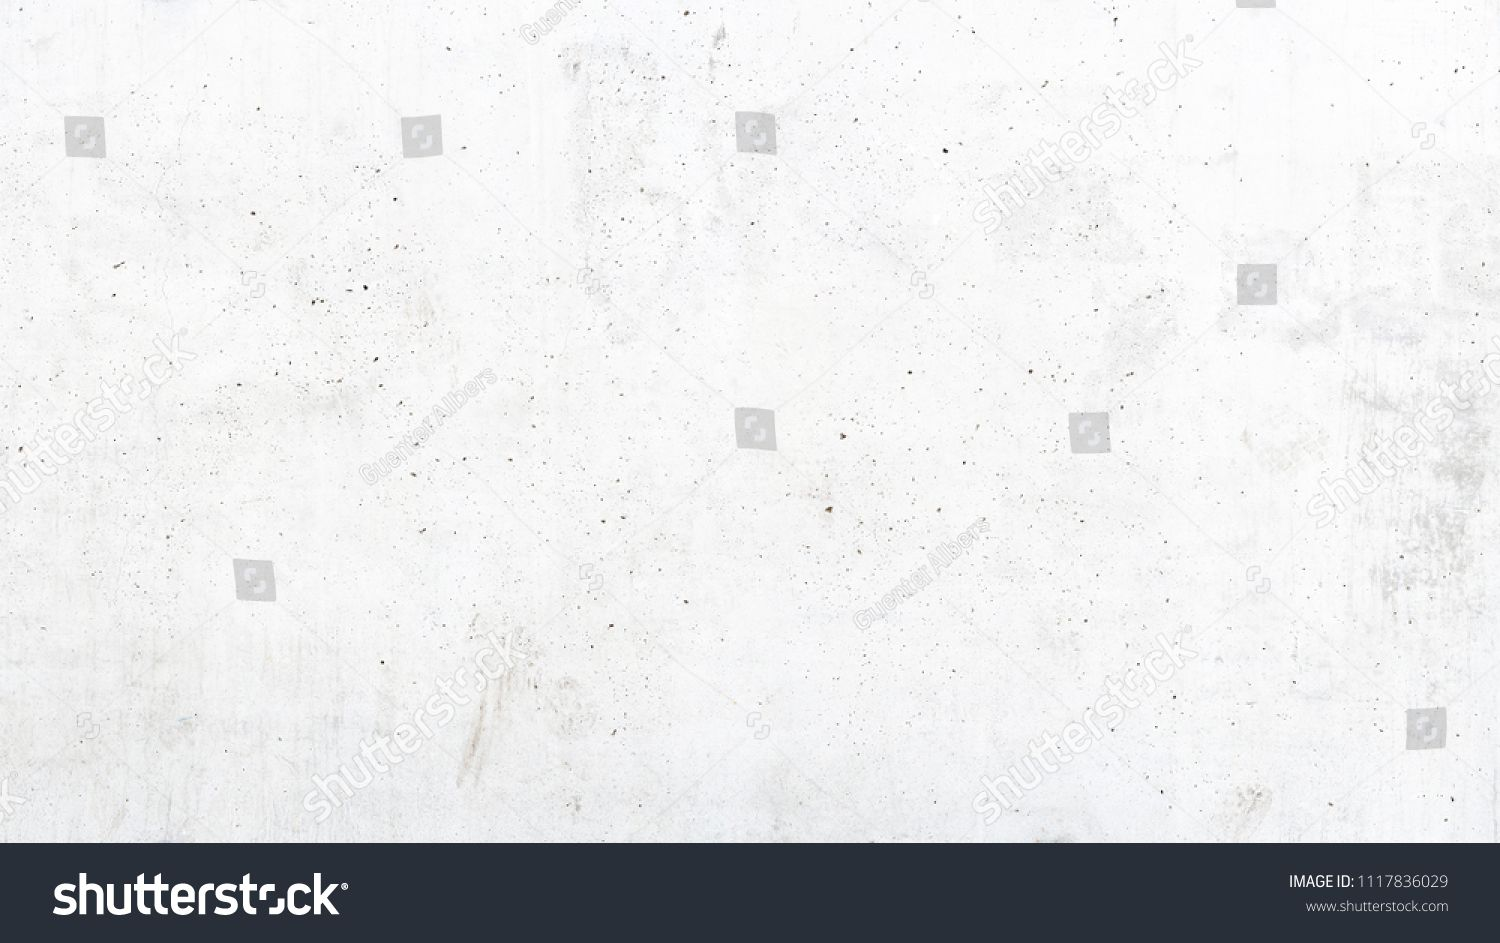 Texture Of Old White Concrete Wall For Background Ad Spon White Texture Concrete Background Concrete Wall White Concrete Wall Background